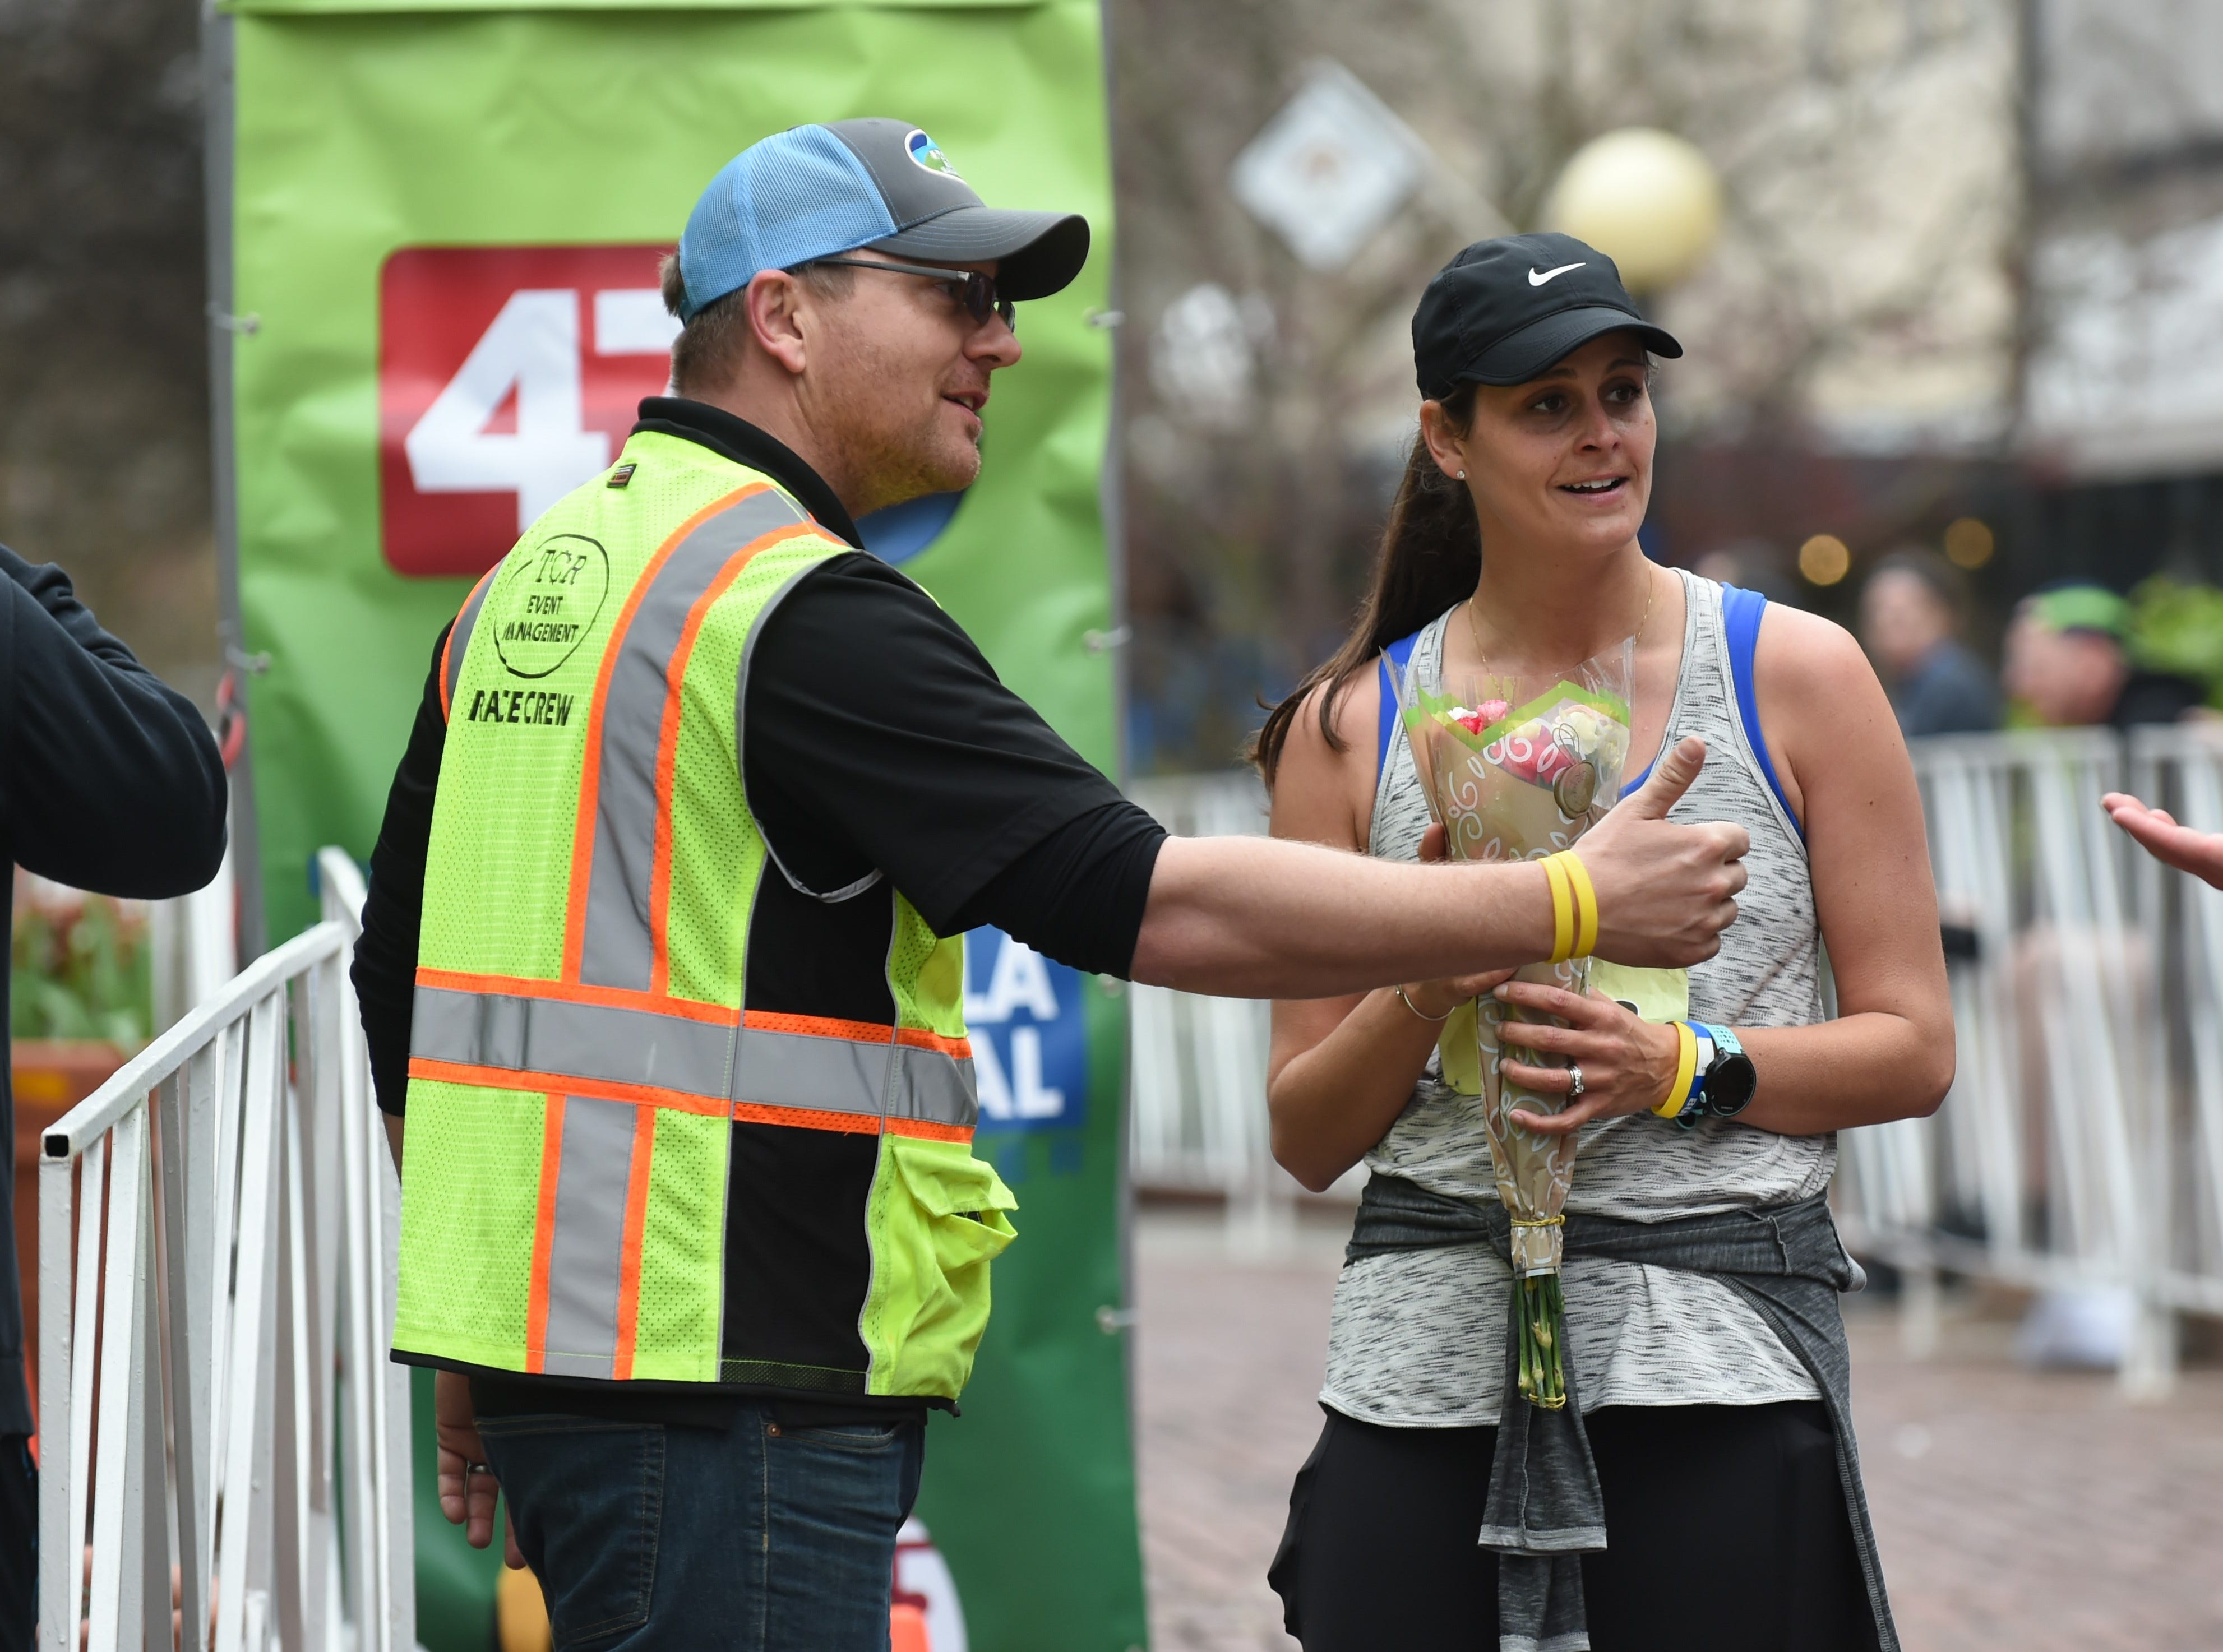 Janel Walters is presented with flowers after finishing the half marathon at the 2nd Salisbury Marathon/ Half Marathon/ 5k on Saturday, April 6, 2019. They were sent from her husband who couldn't attend the event due to military obligations.